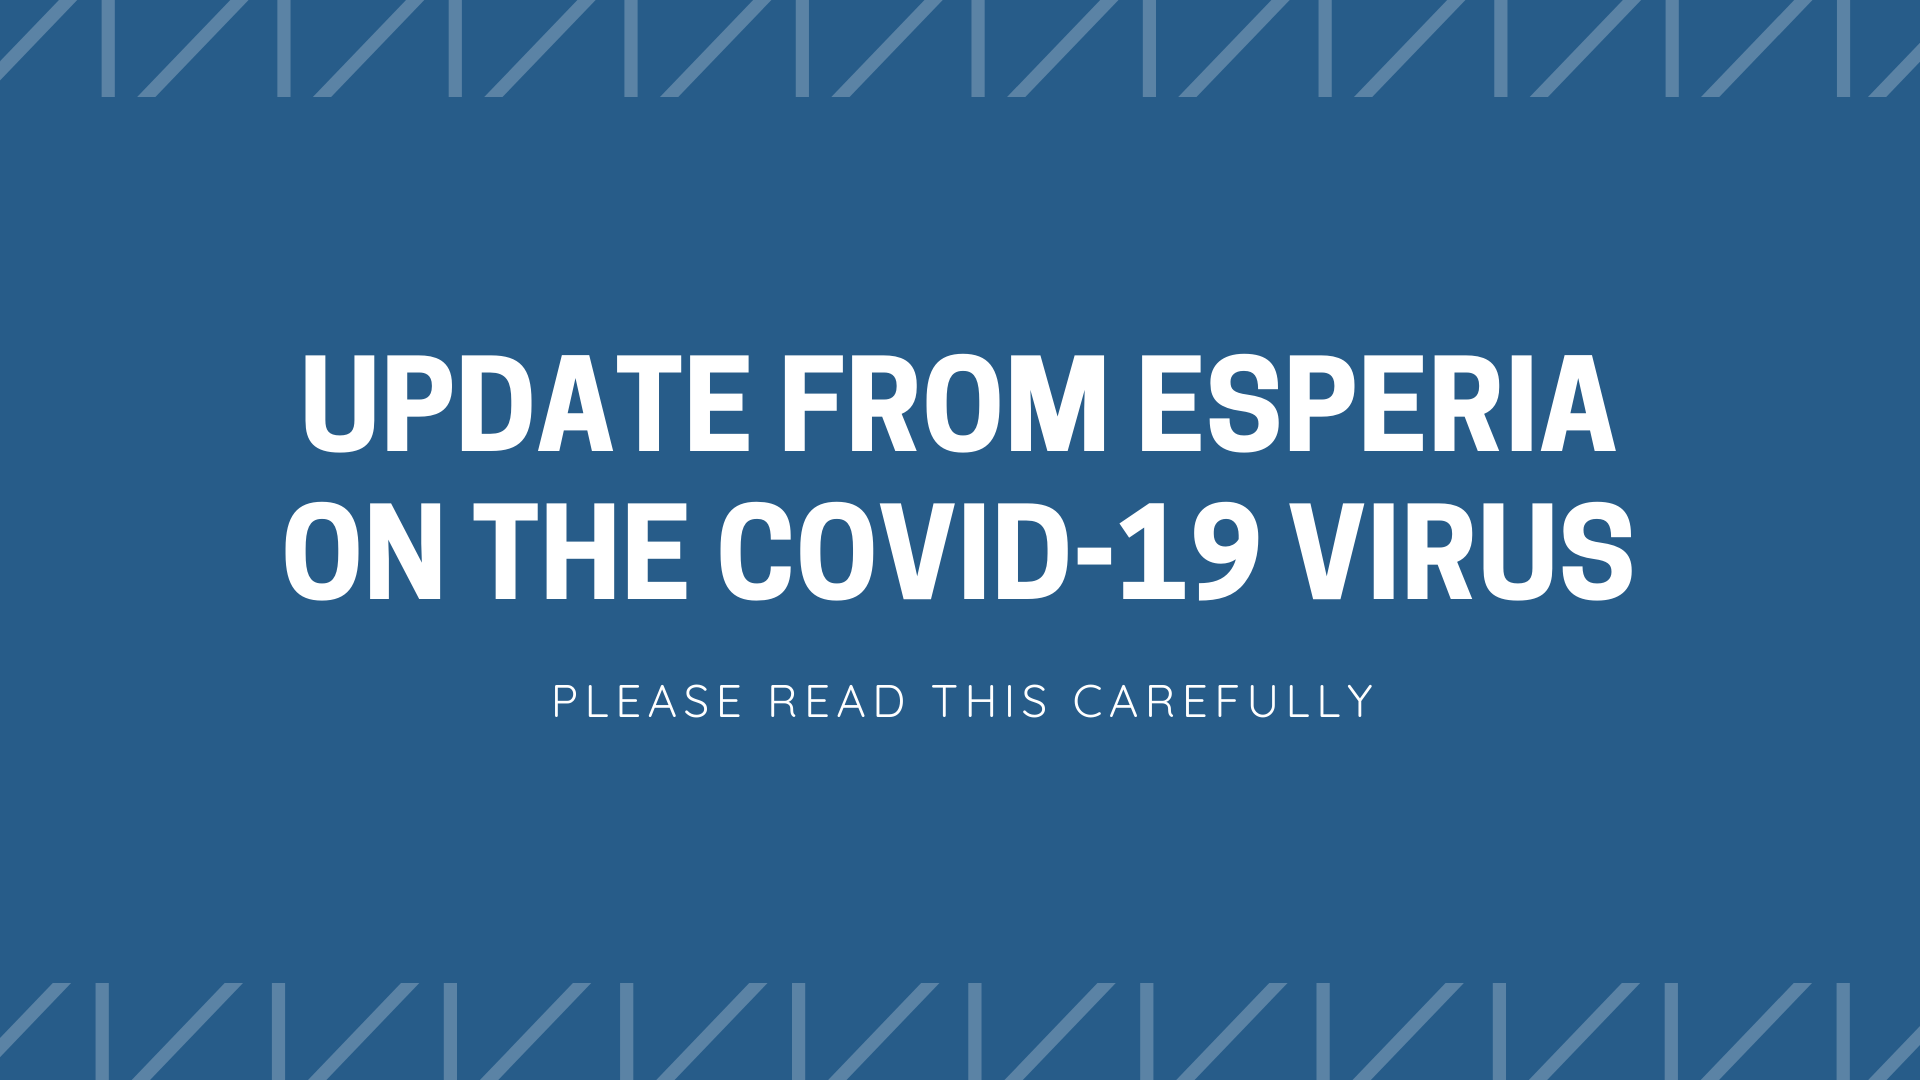 Updates on the COVID-19 virus